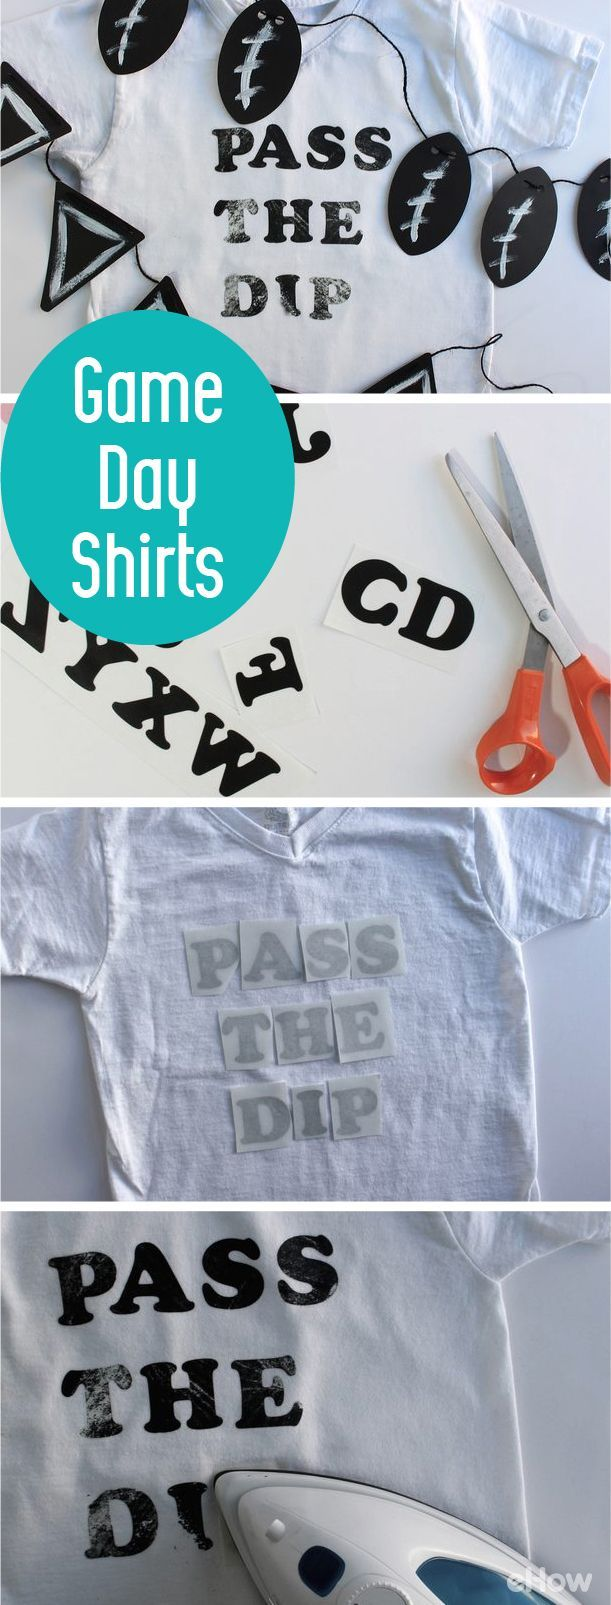 Not super into sports? You can still get in on the fun! Make these party-ready shirts that you can wear at  any and every sports game and tailgate.  http://www.ehow.com/how_12343102_diy-team-shirts-game-day.html?utm_source=pinterest.com&utm_medium=referral&utm_content=freestyle&utm_campaign=fanpage